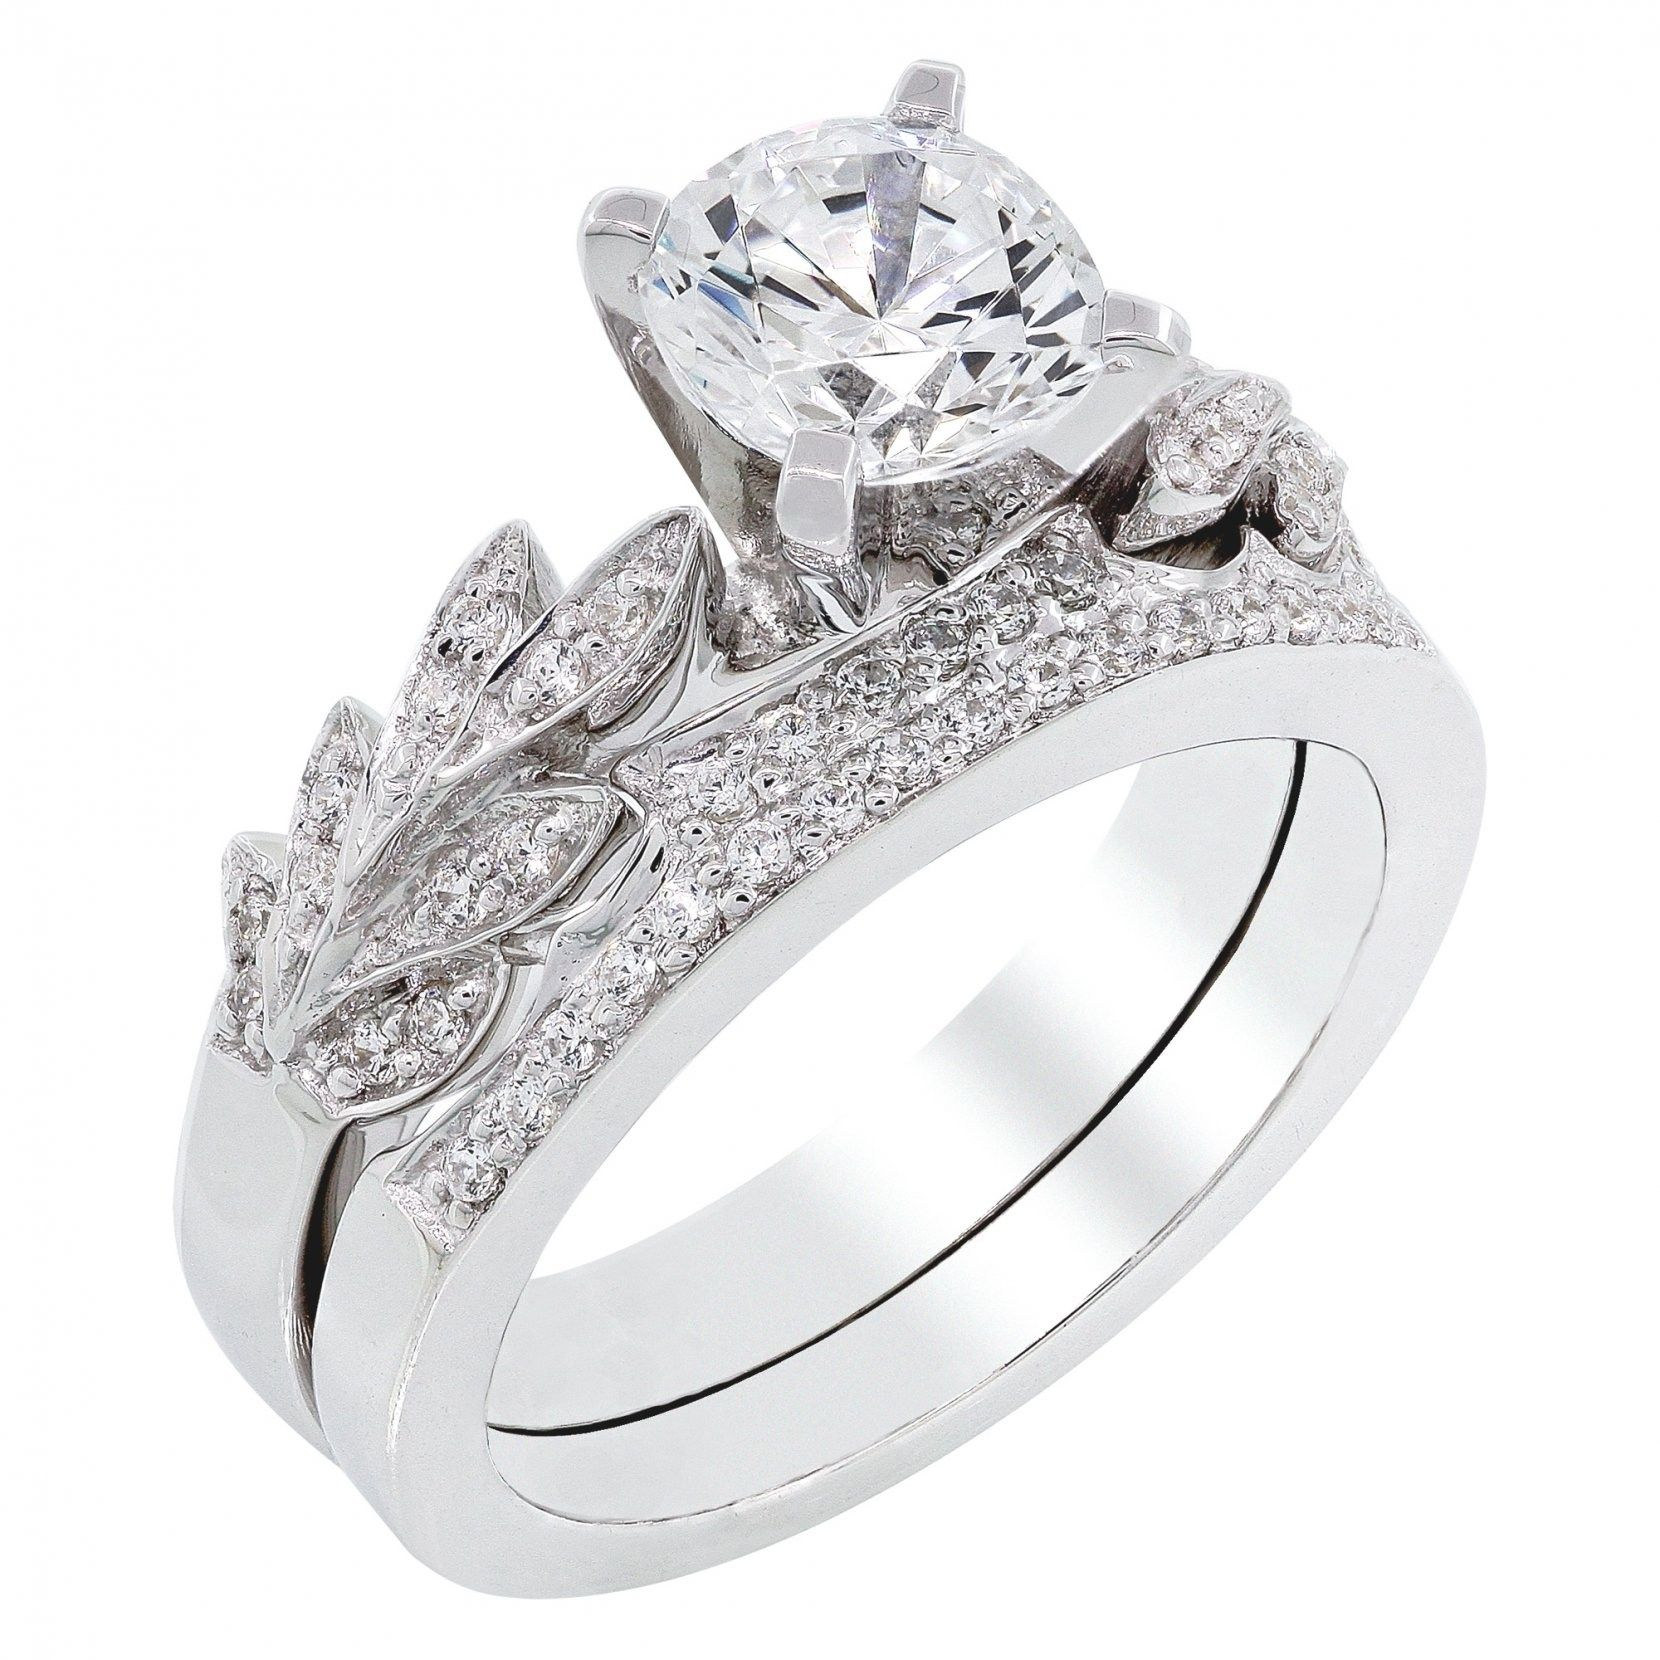 Unique Inexpensive Wedding Rings Ideas Inexpensive wedding rings